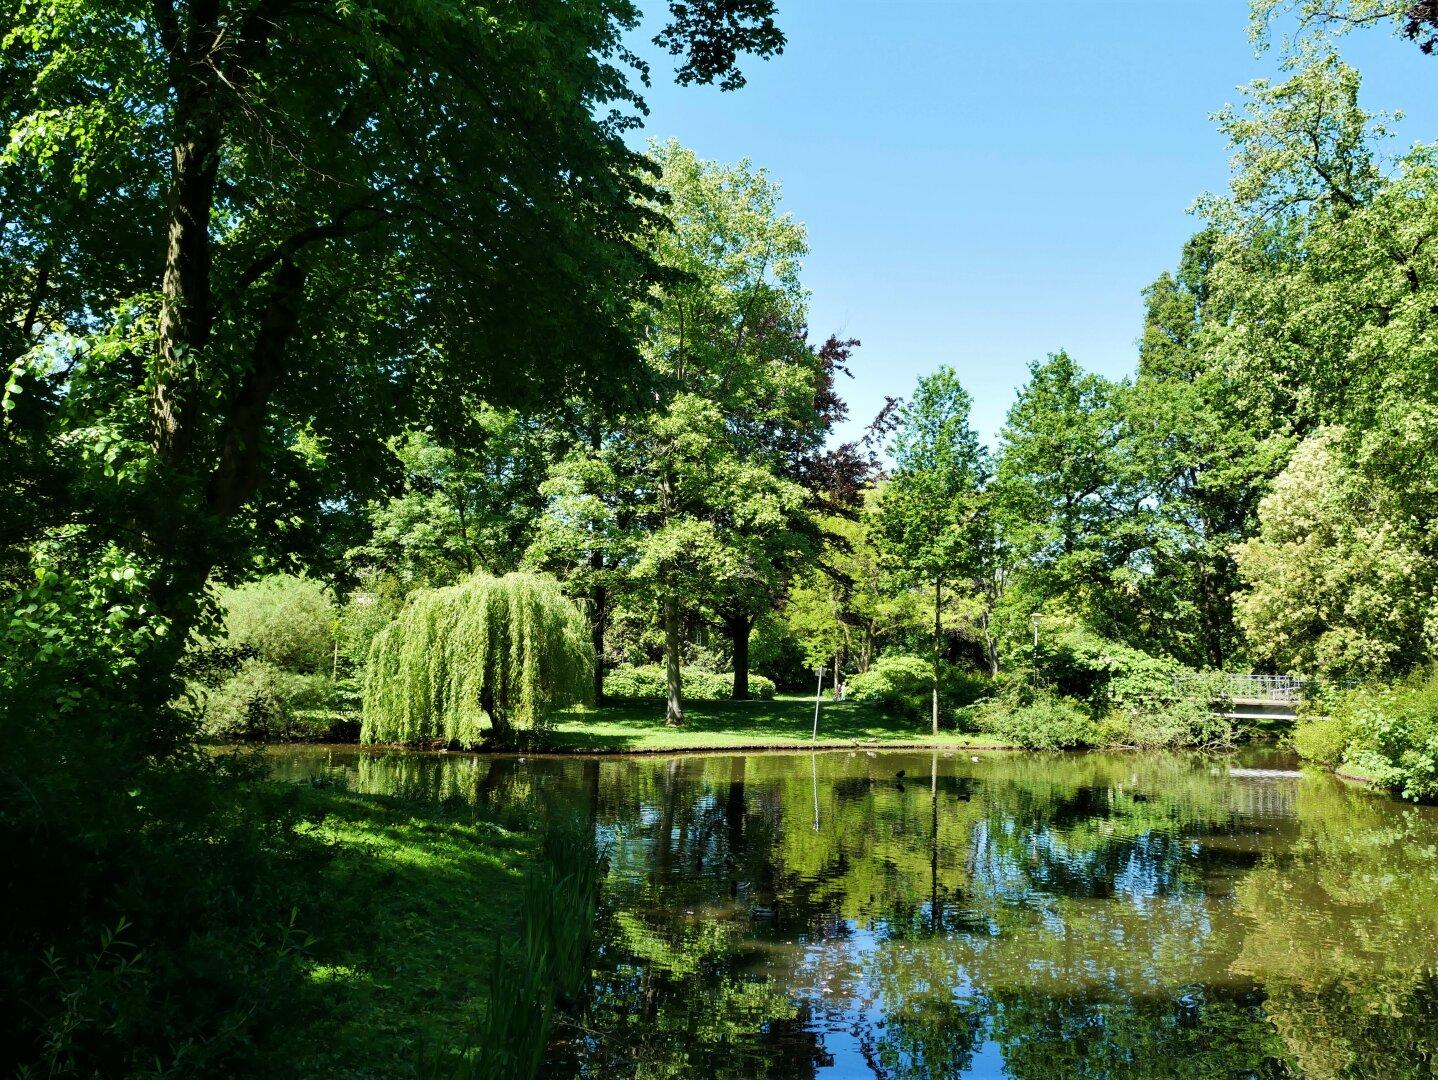 A pond surrounded by trees